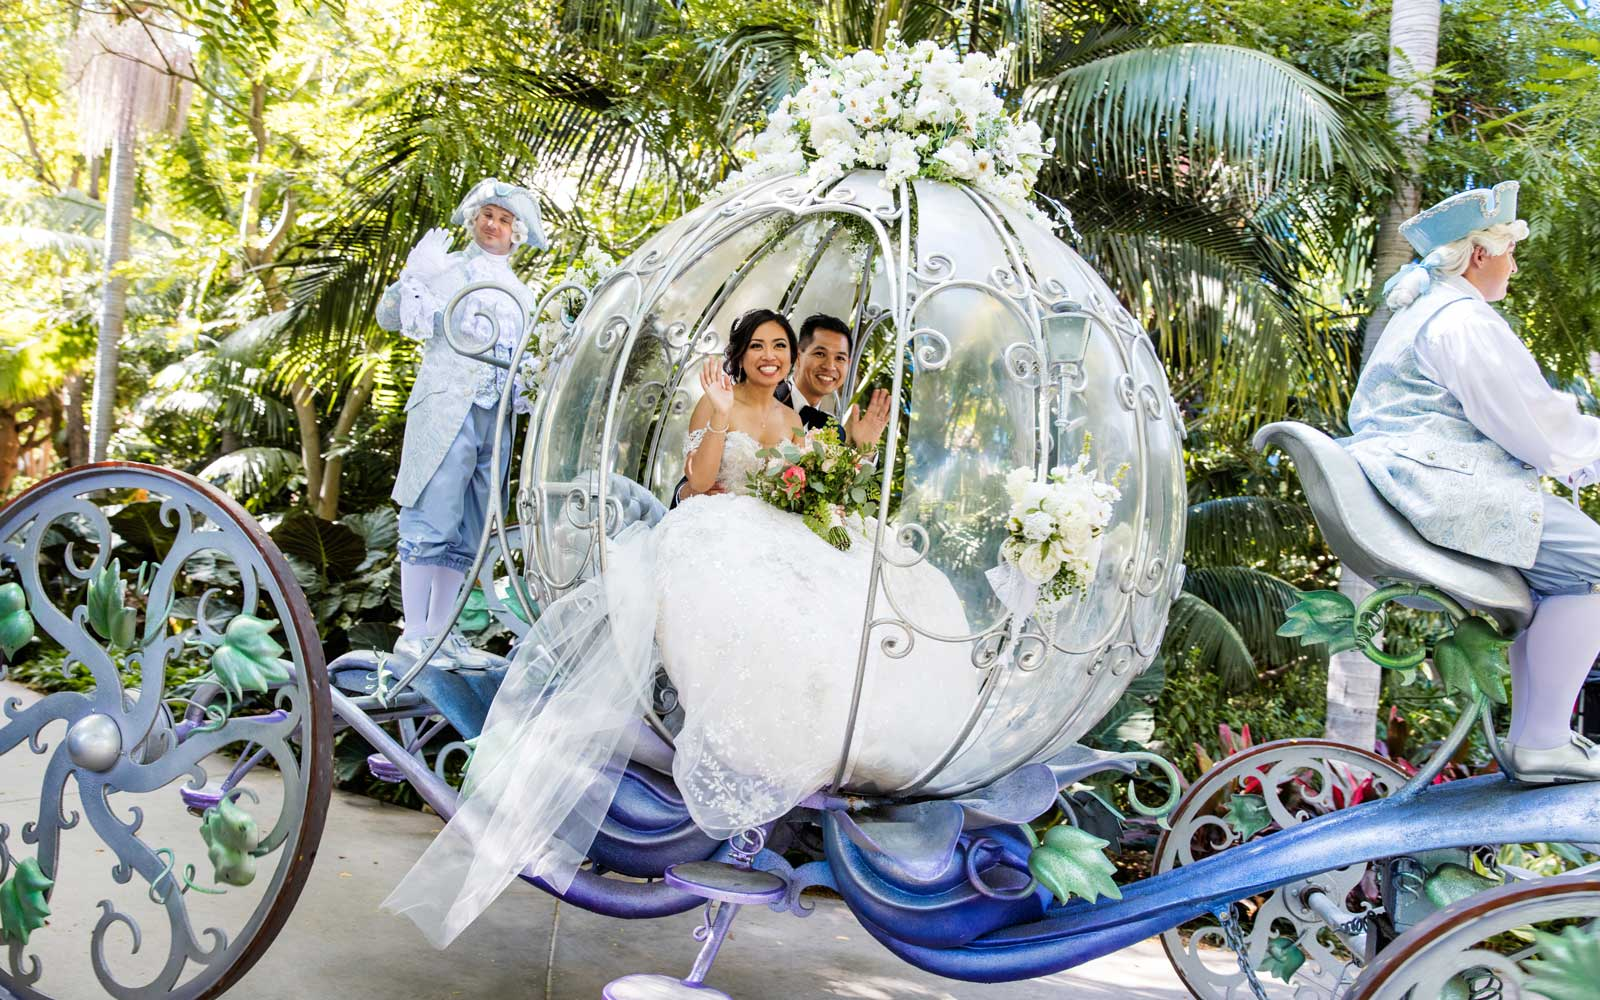 This Magical Disney Wedding Was a Real-life Fairy Tale